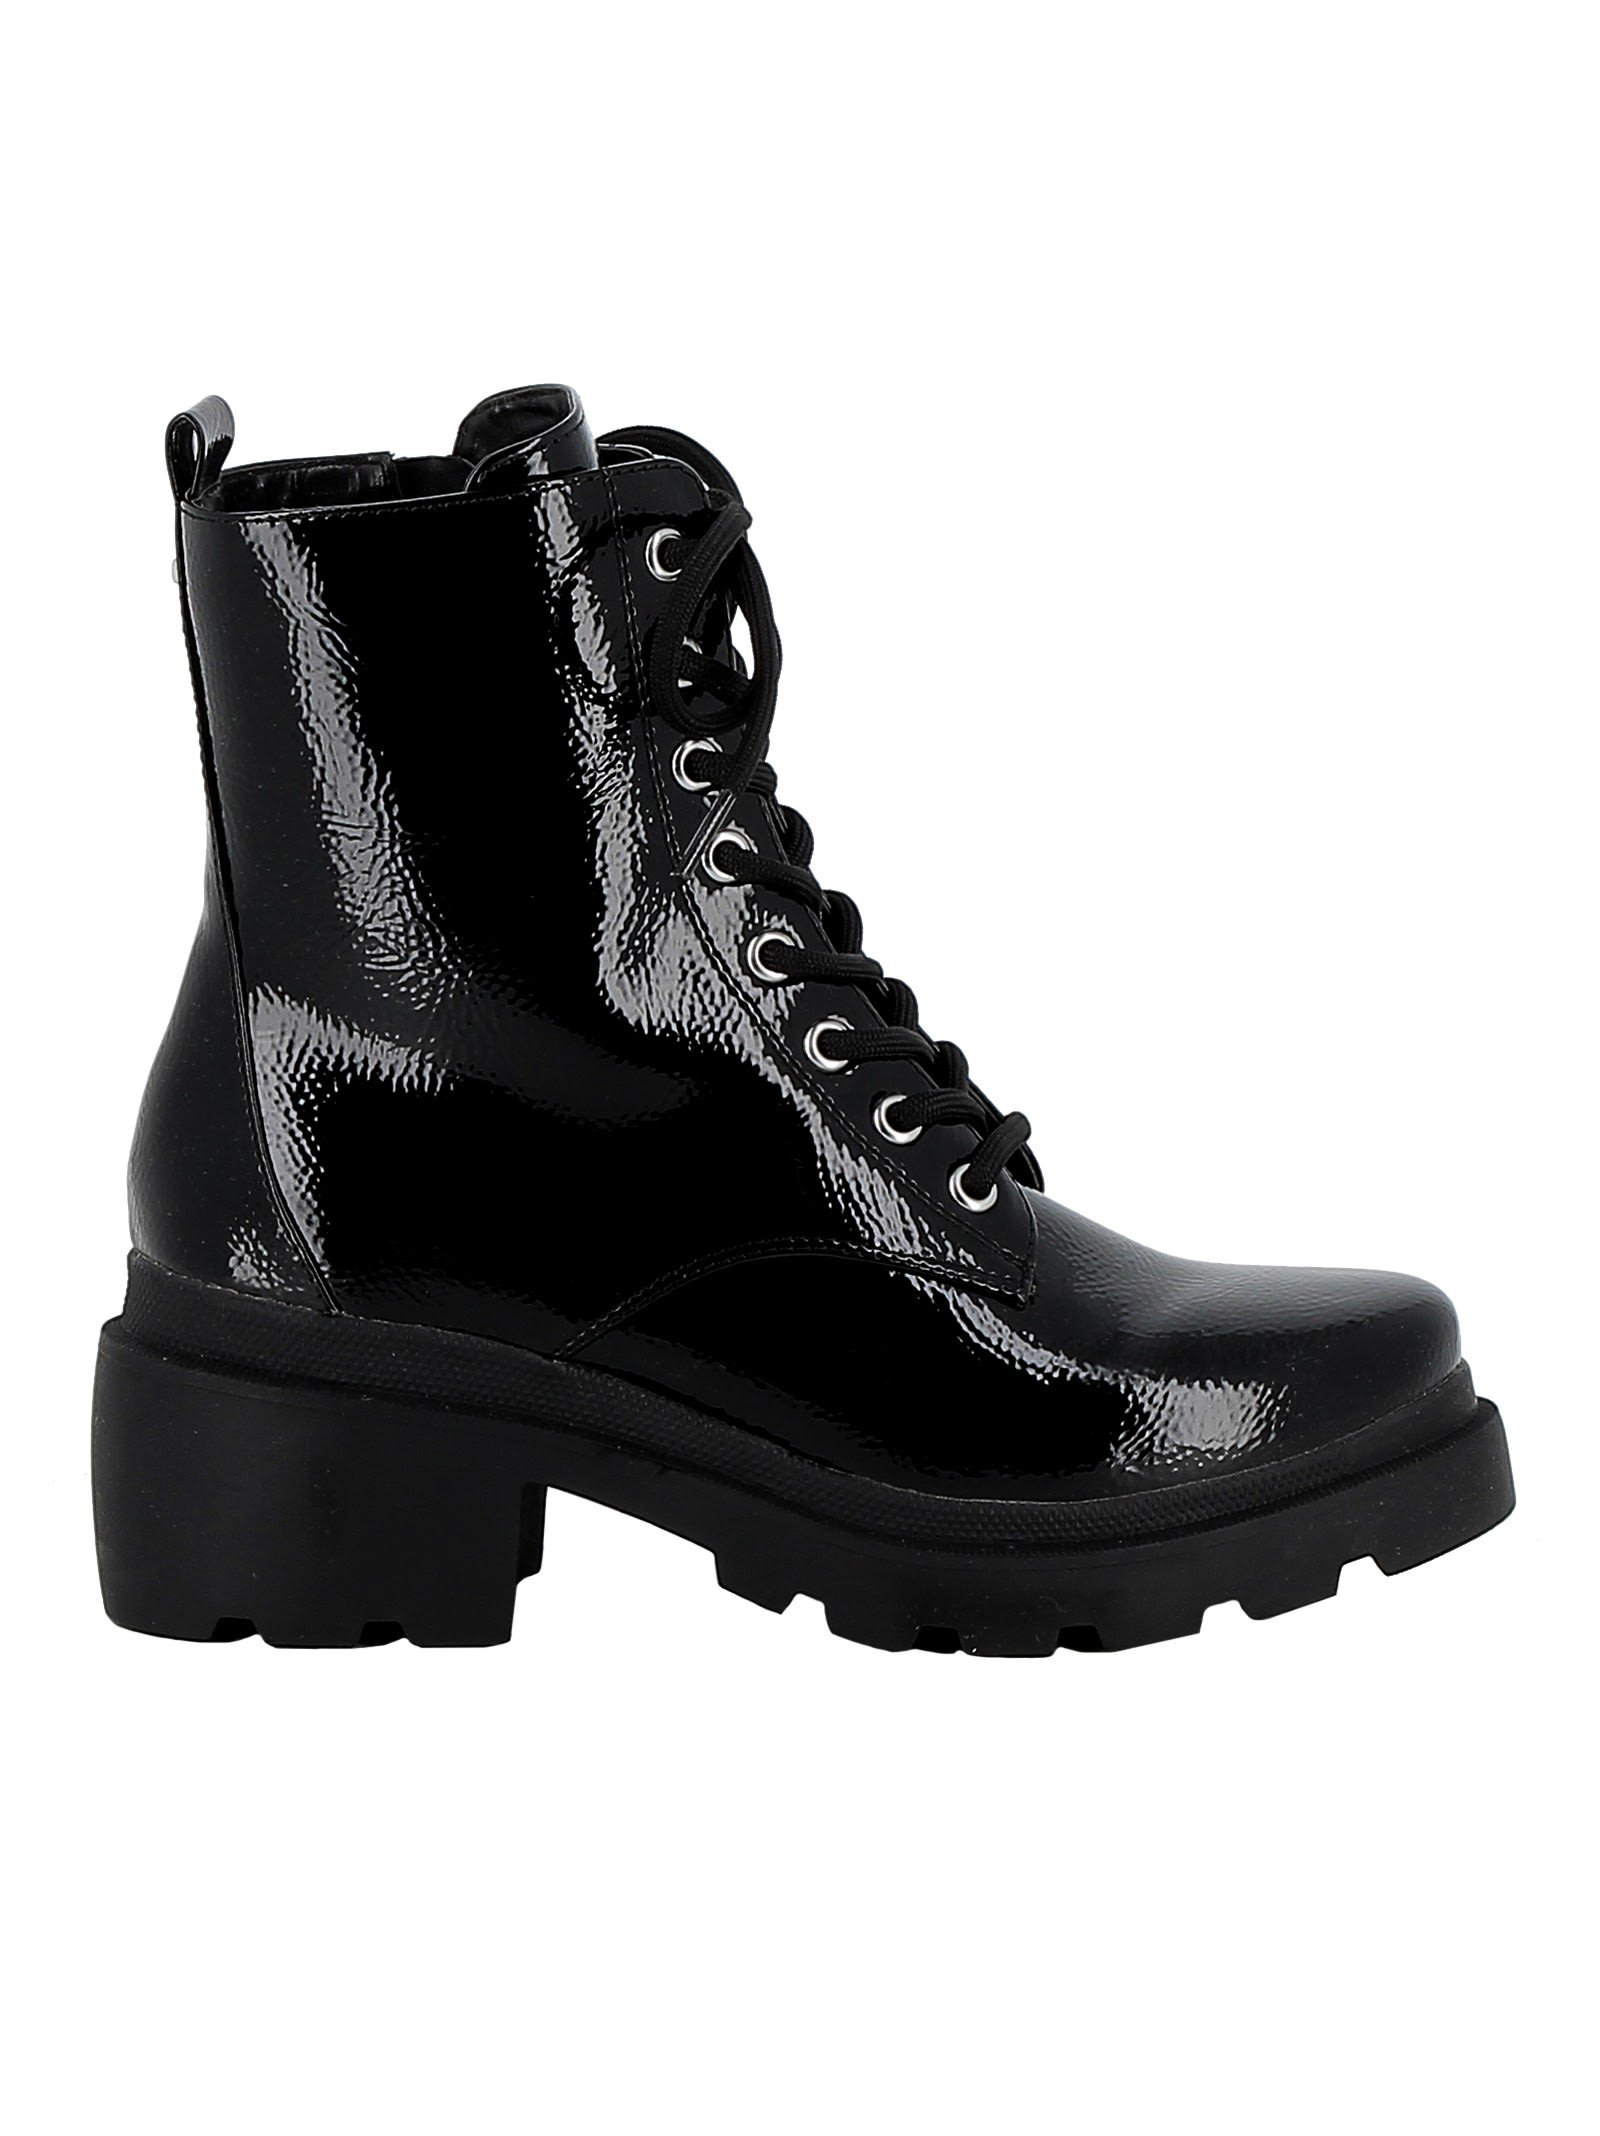 Kendall+kylie Black Patent Leather Ankle Boots